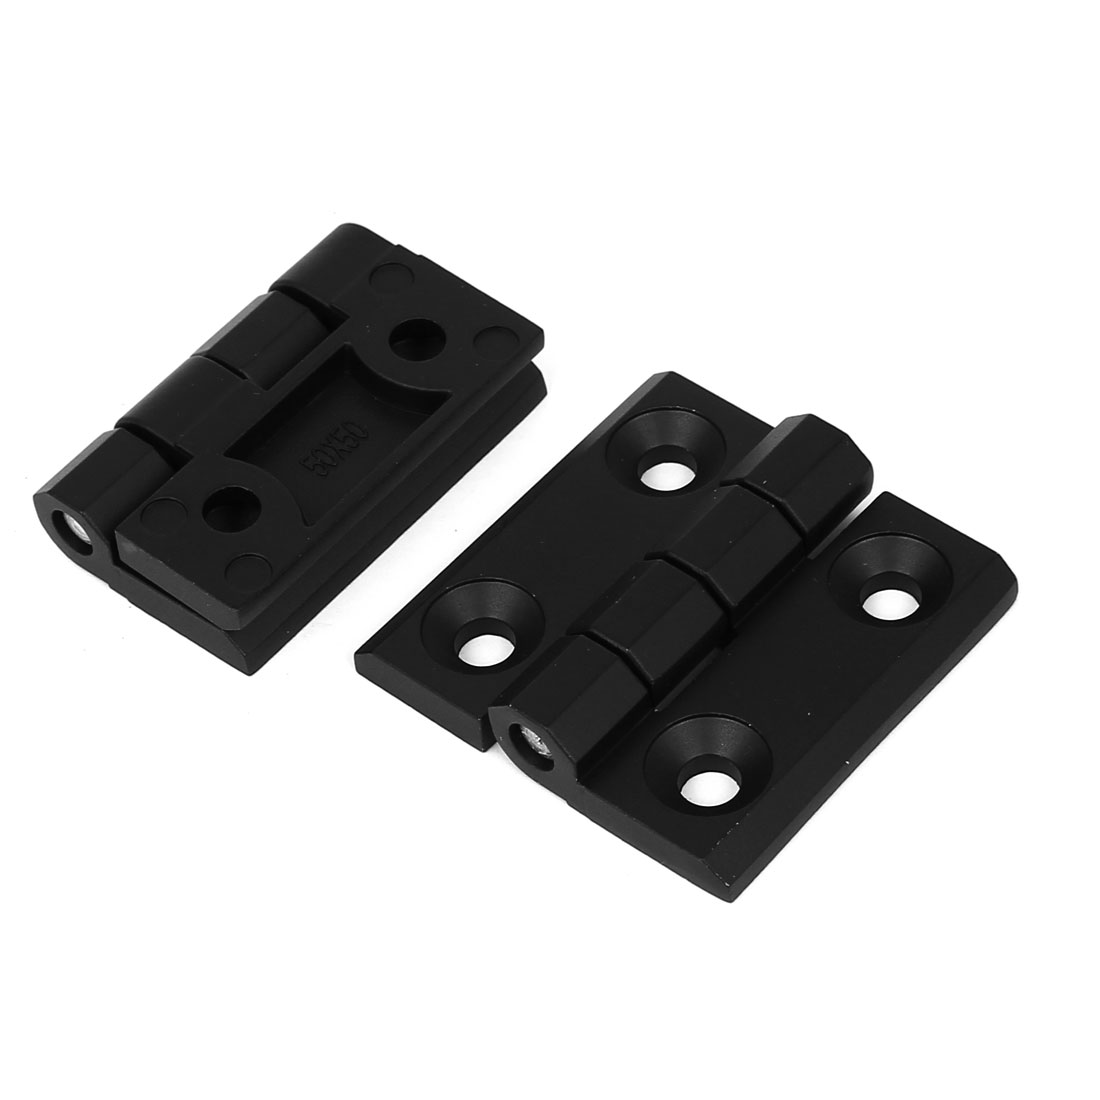 Uxcell Closet Cupboard Cabinet 50mm x 50mm Zinc Alloy Door  Hinge Black 2pcs - image 1 of 1